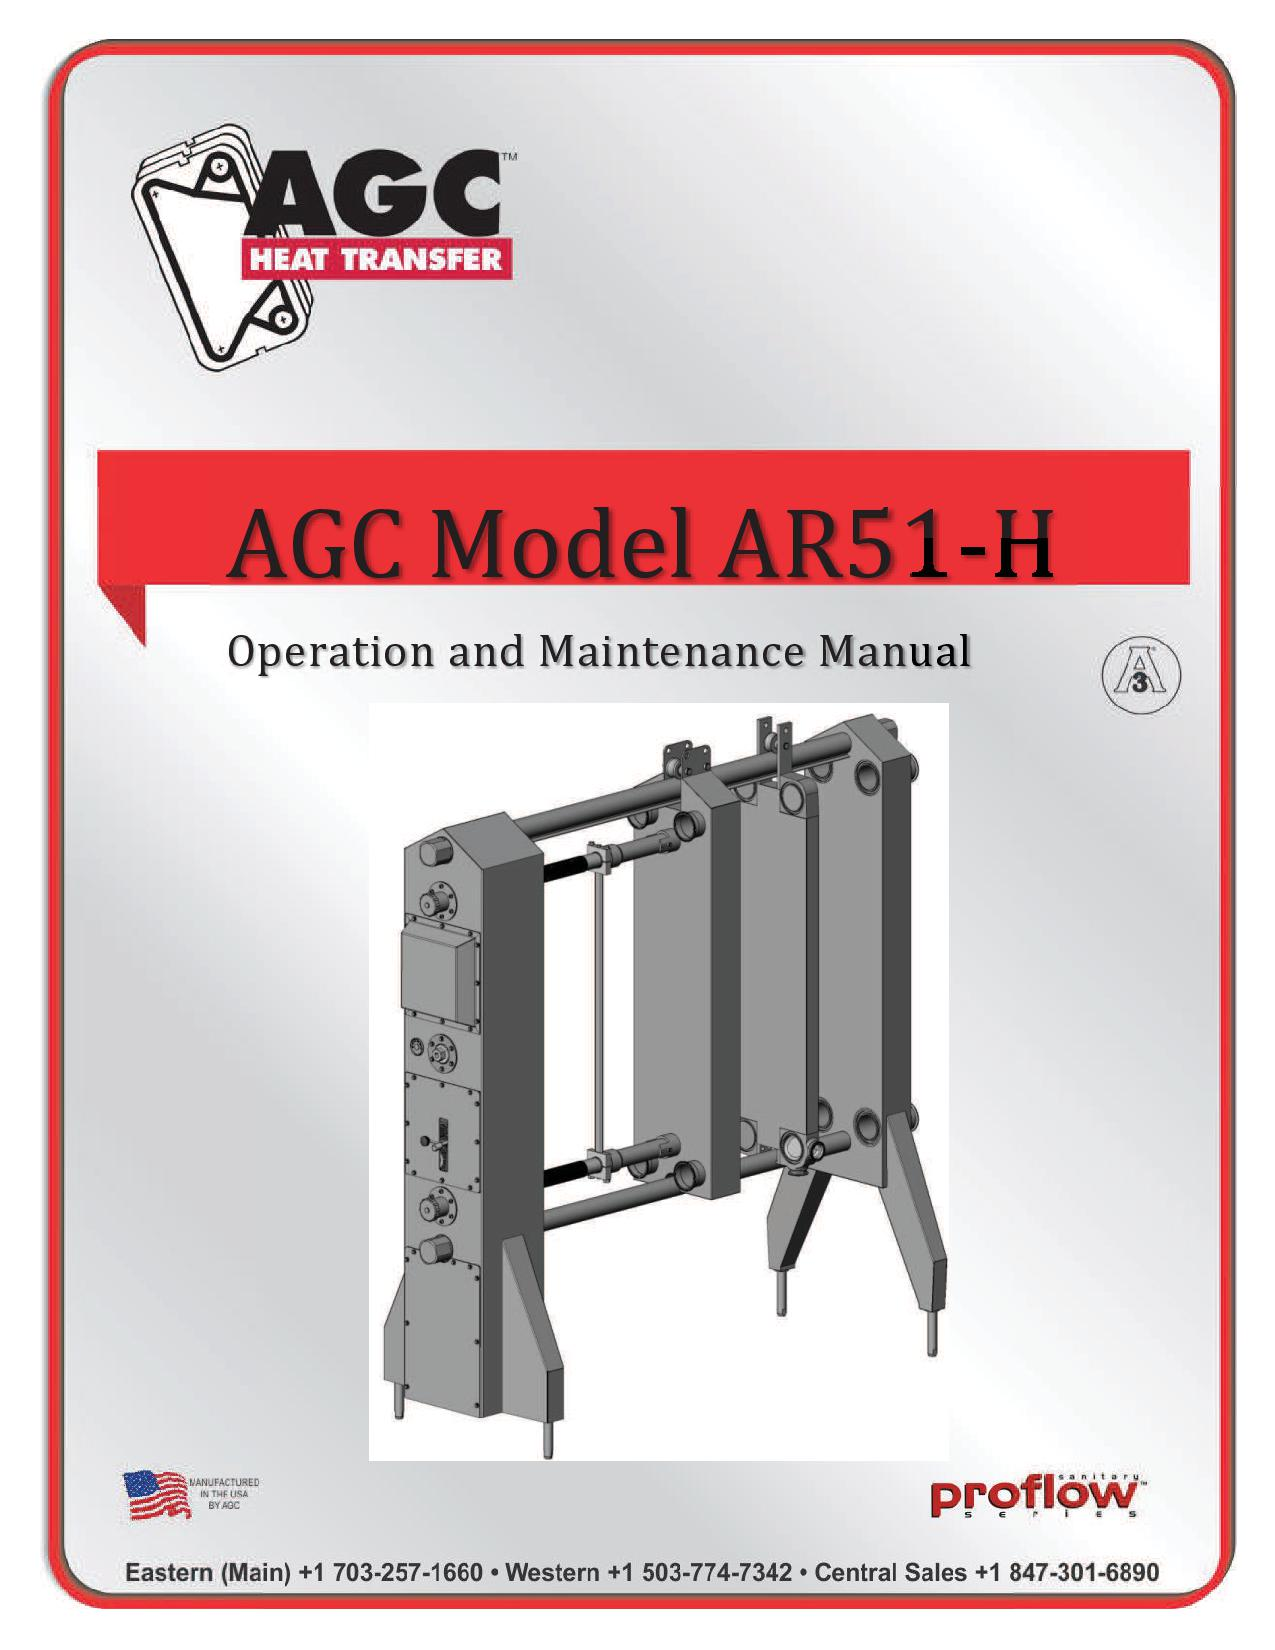 AGC Operating Manual AR51-H